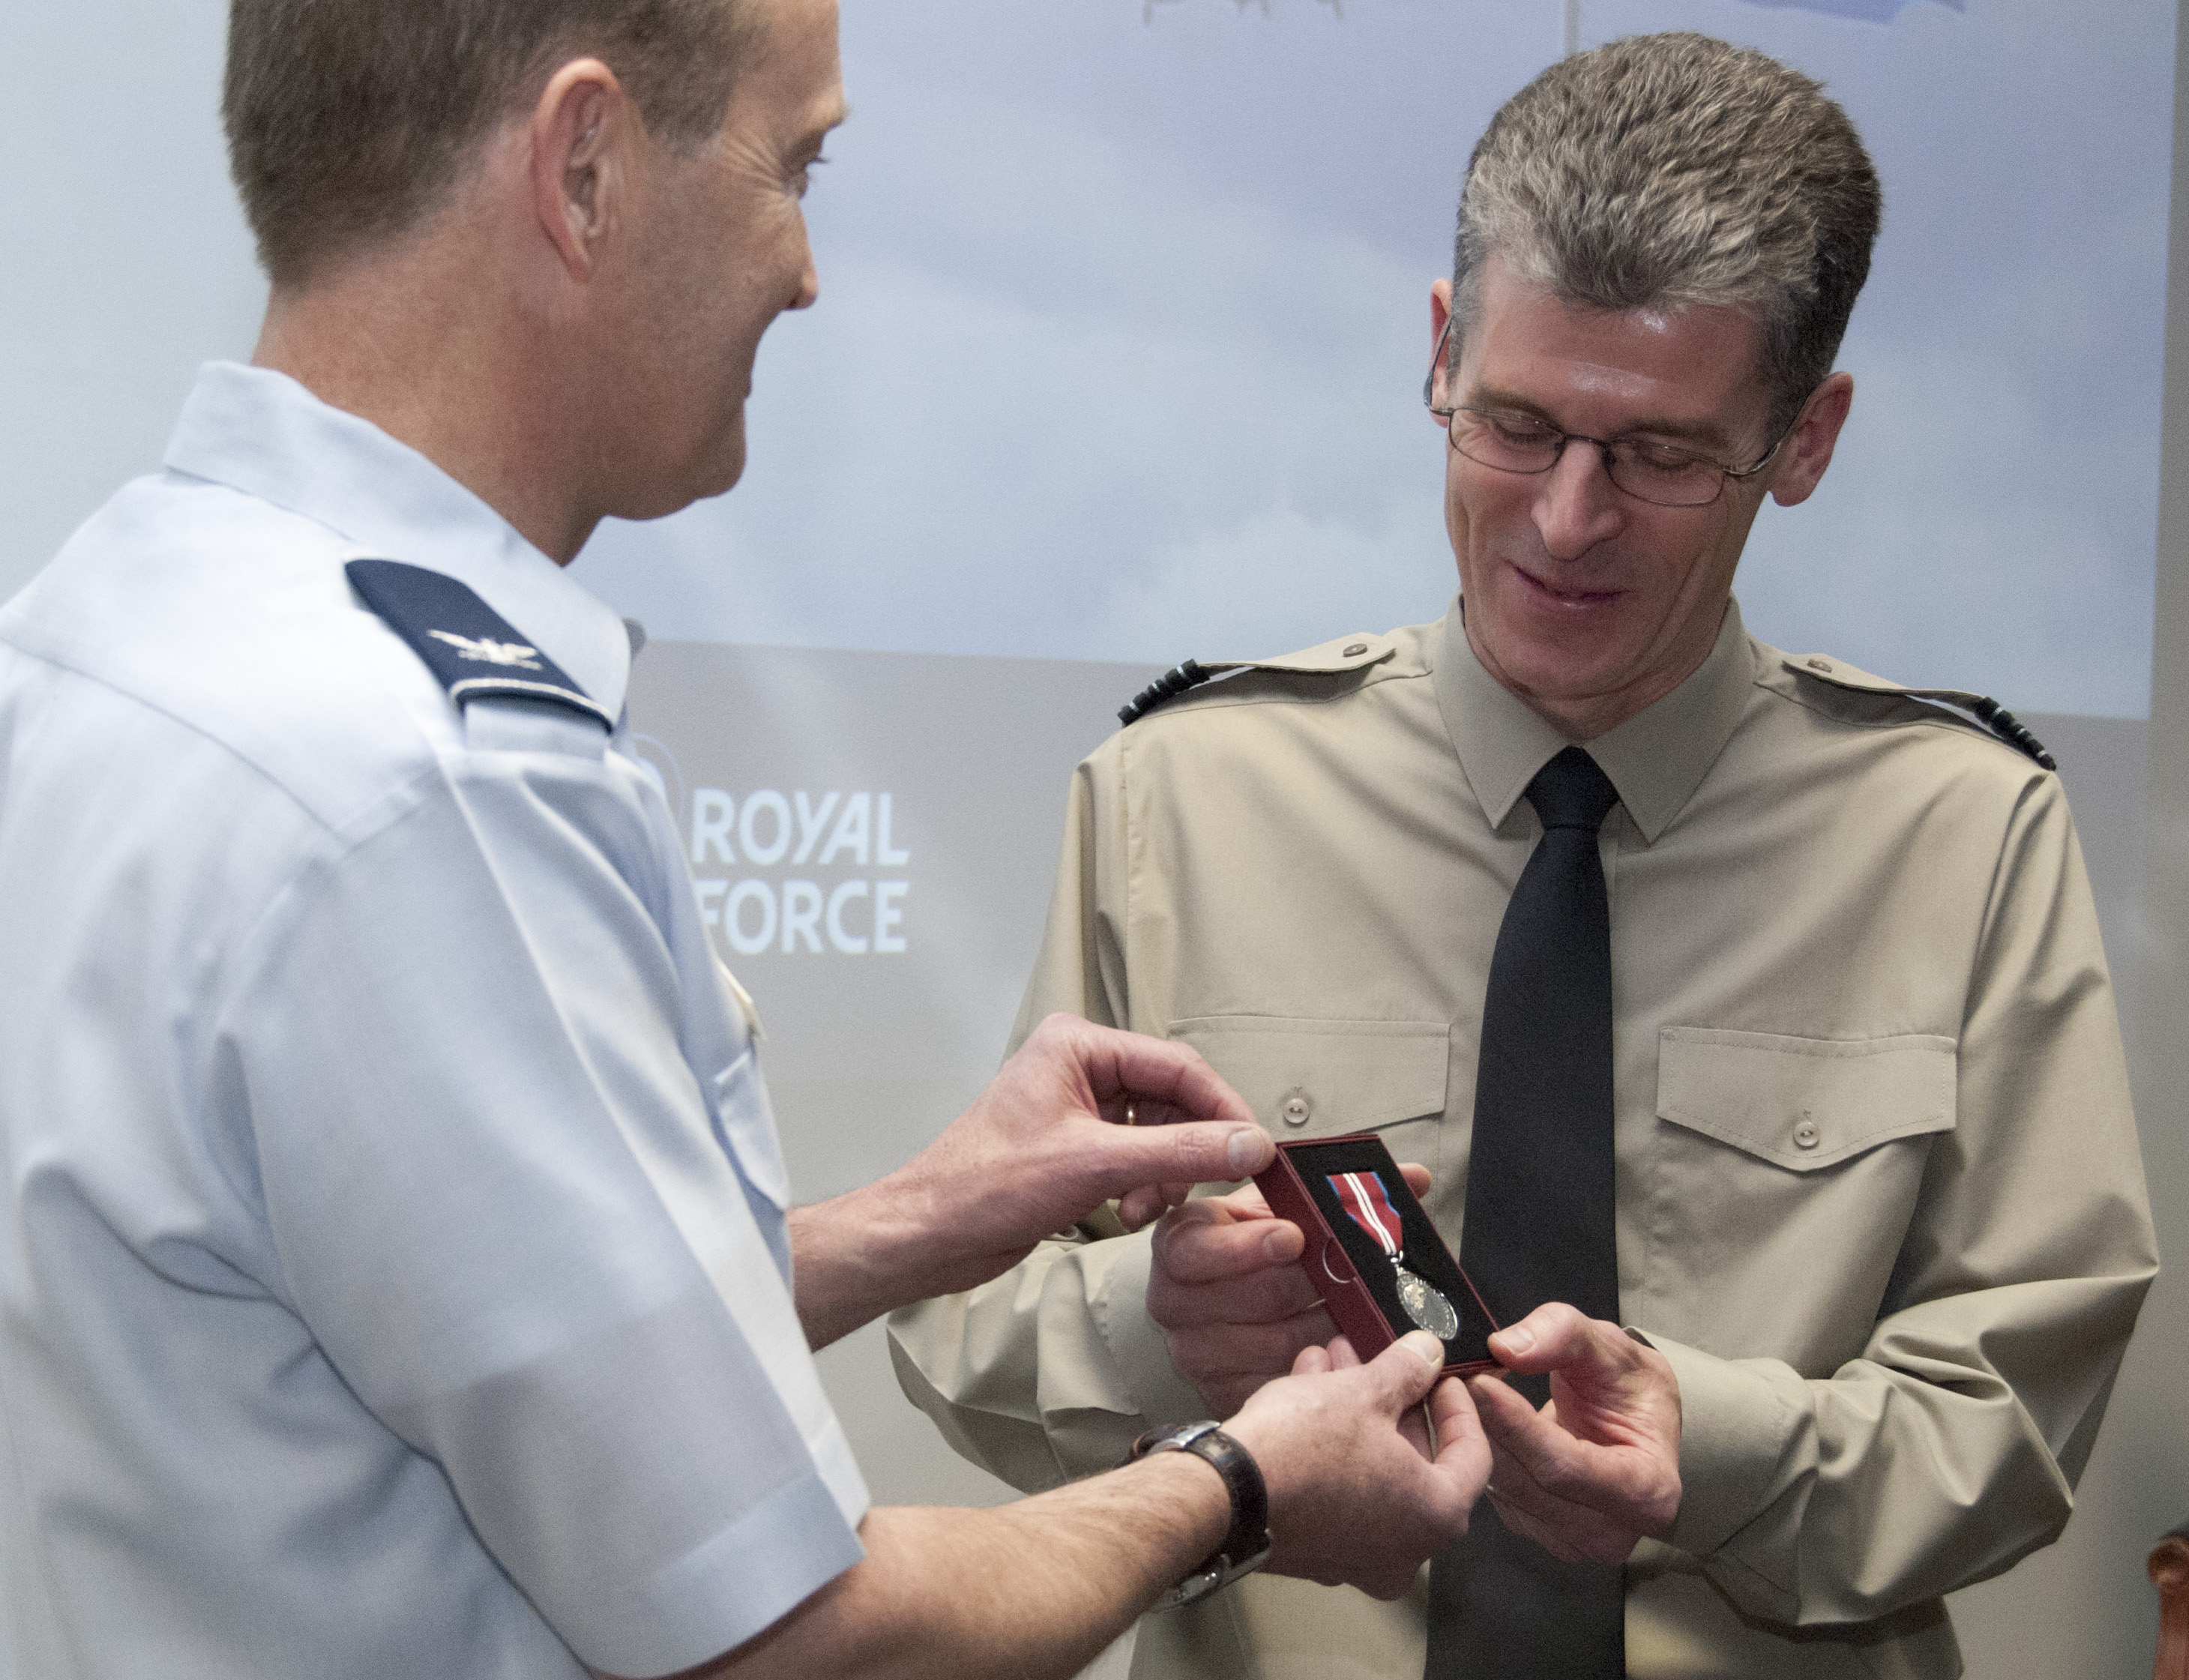 RAF officer departs Air Force Academy